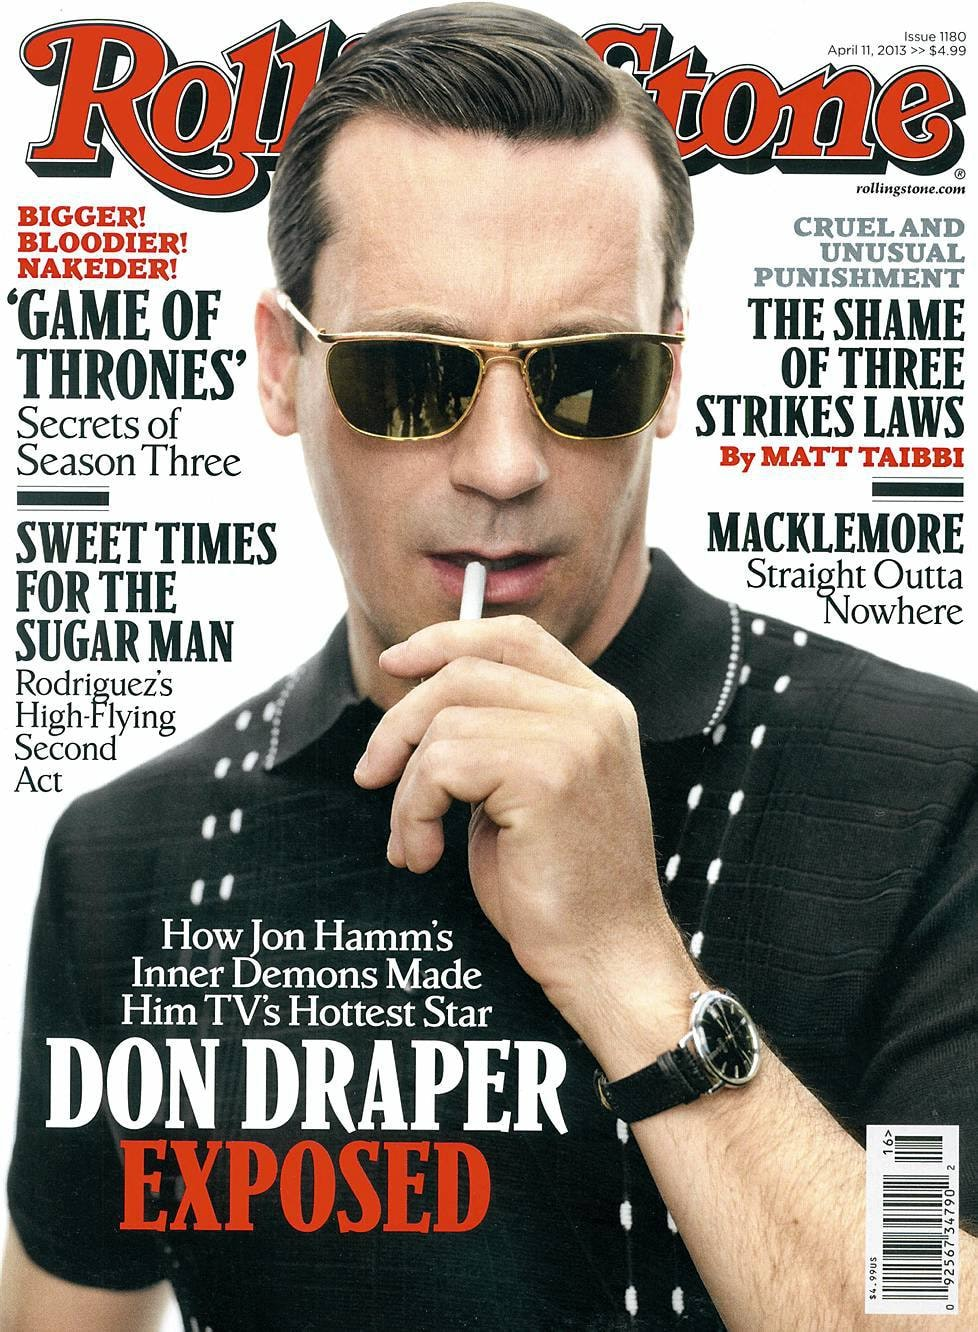 Watch Spotting: Jon Hamm Wearing A Vintage Omega Seamaster On The Cover Of Rolling Stone